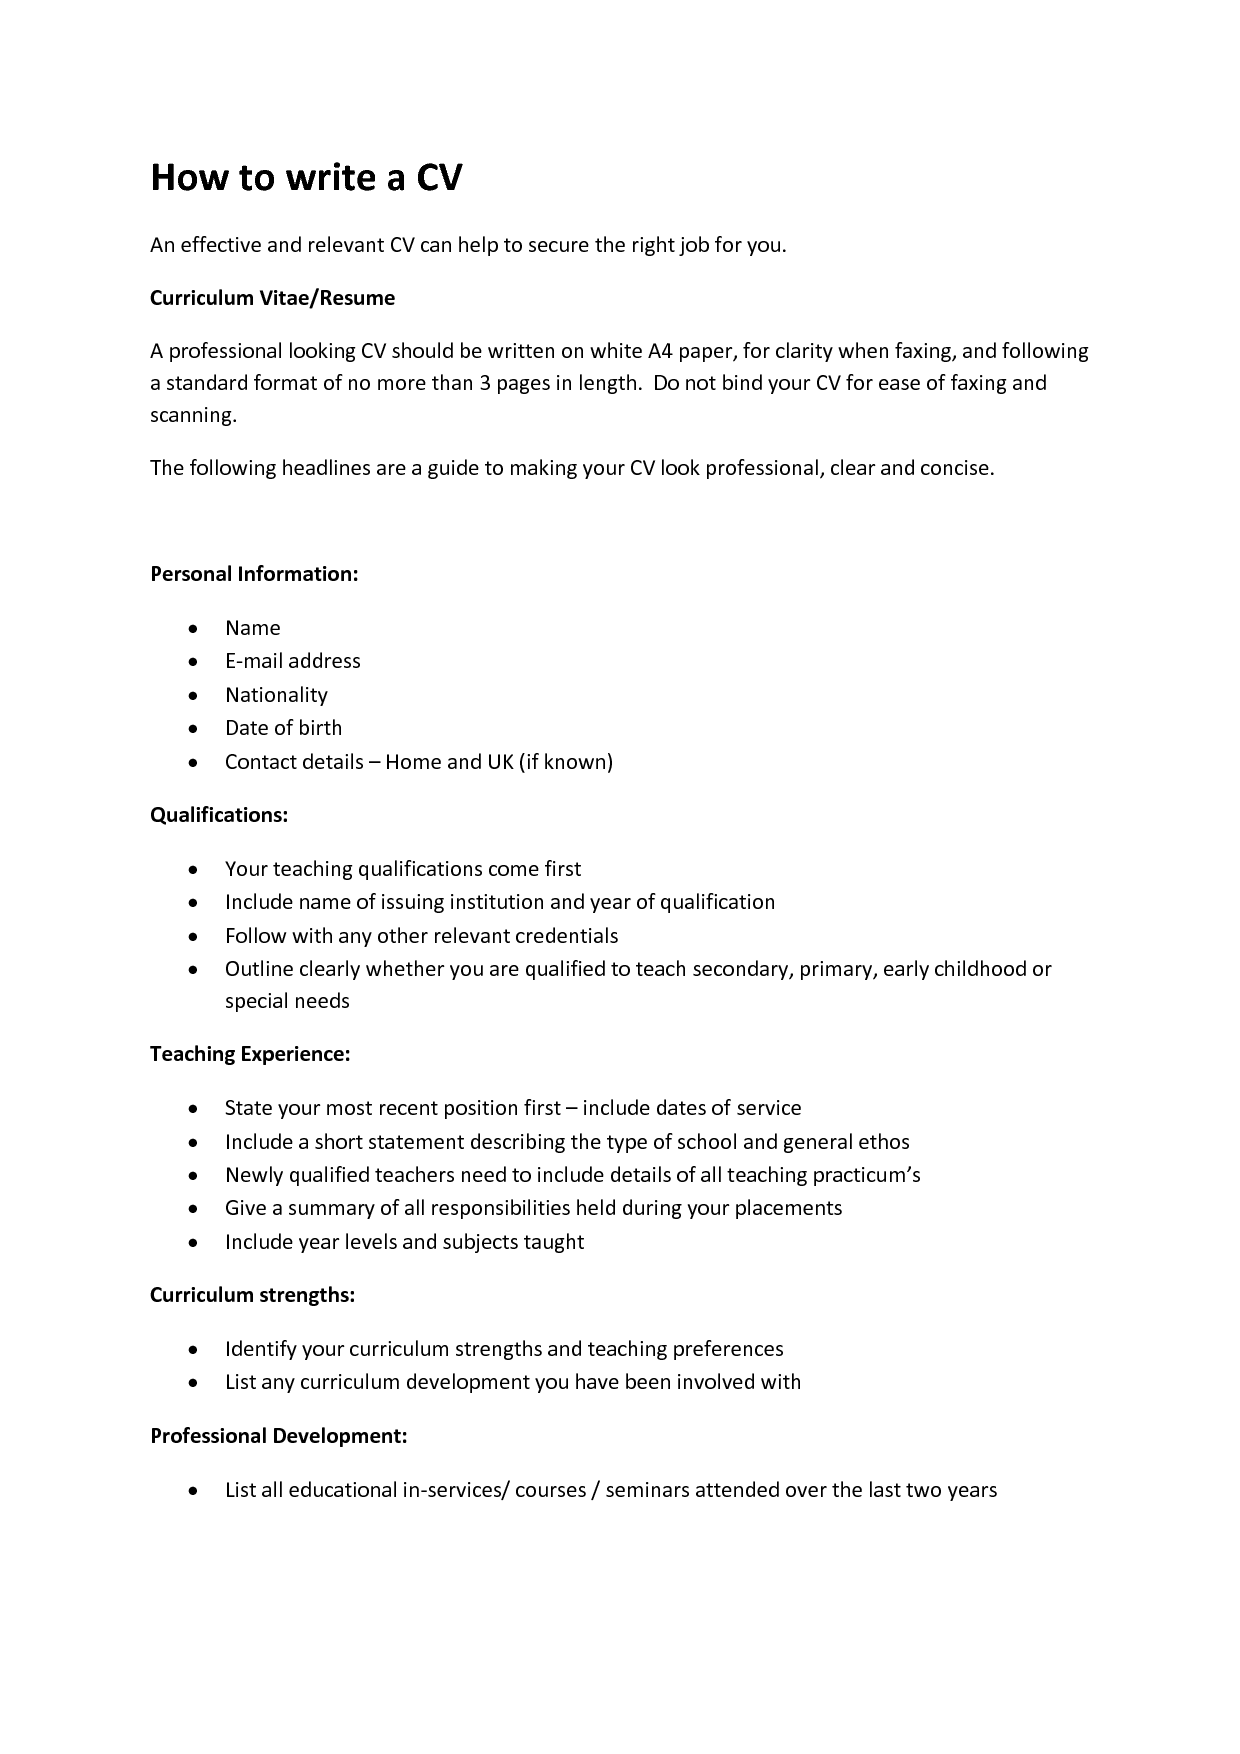 how do i write a resume how to write a cv fotolip rich image and wallpaper 22141 | How to write a CV 2